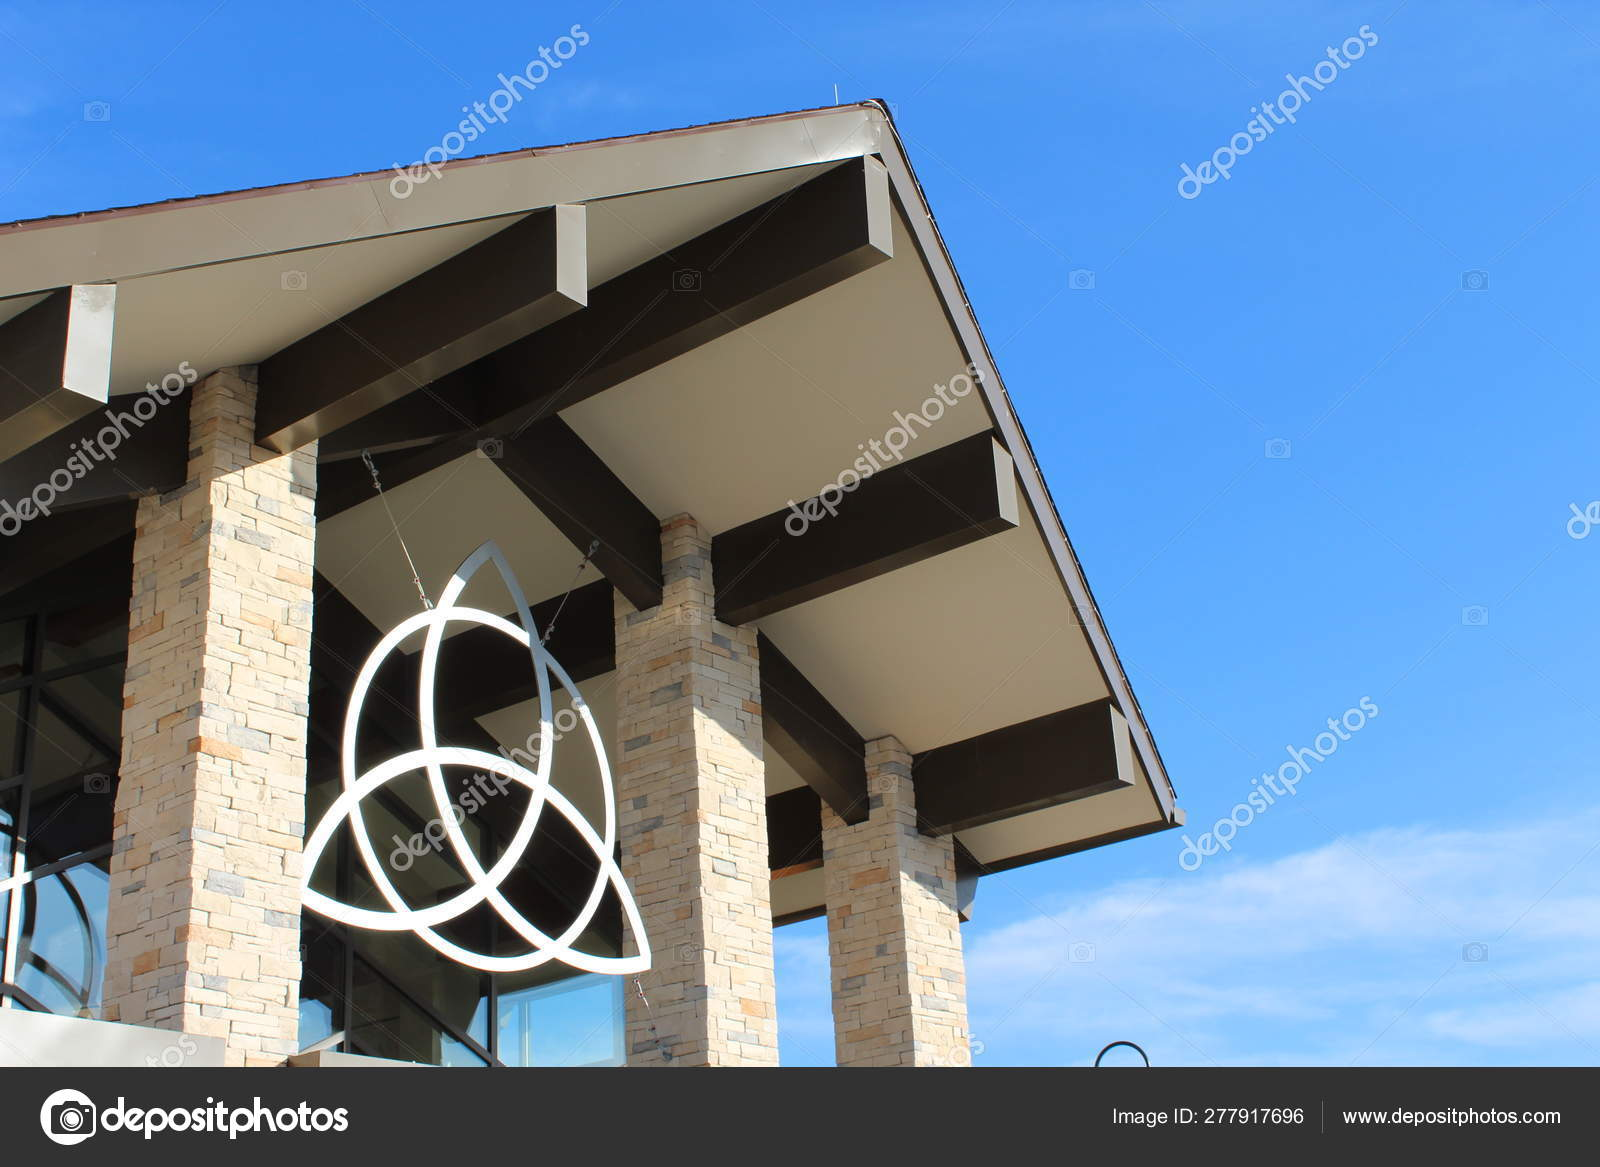 Entrance Modern Church Building — Stock Photo © 678studio #277917696